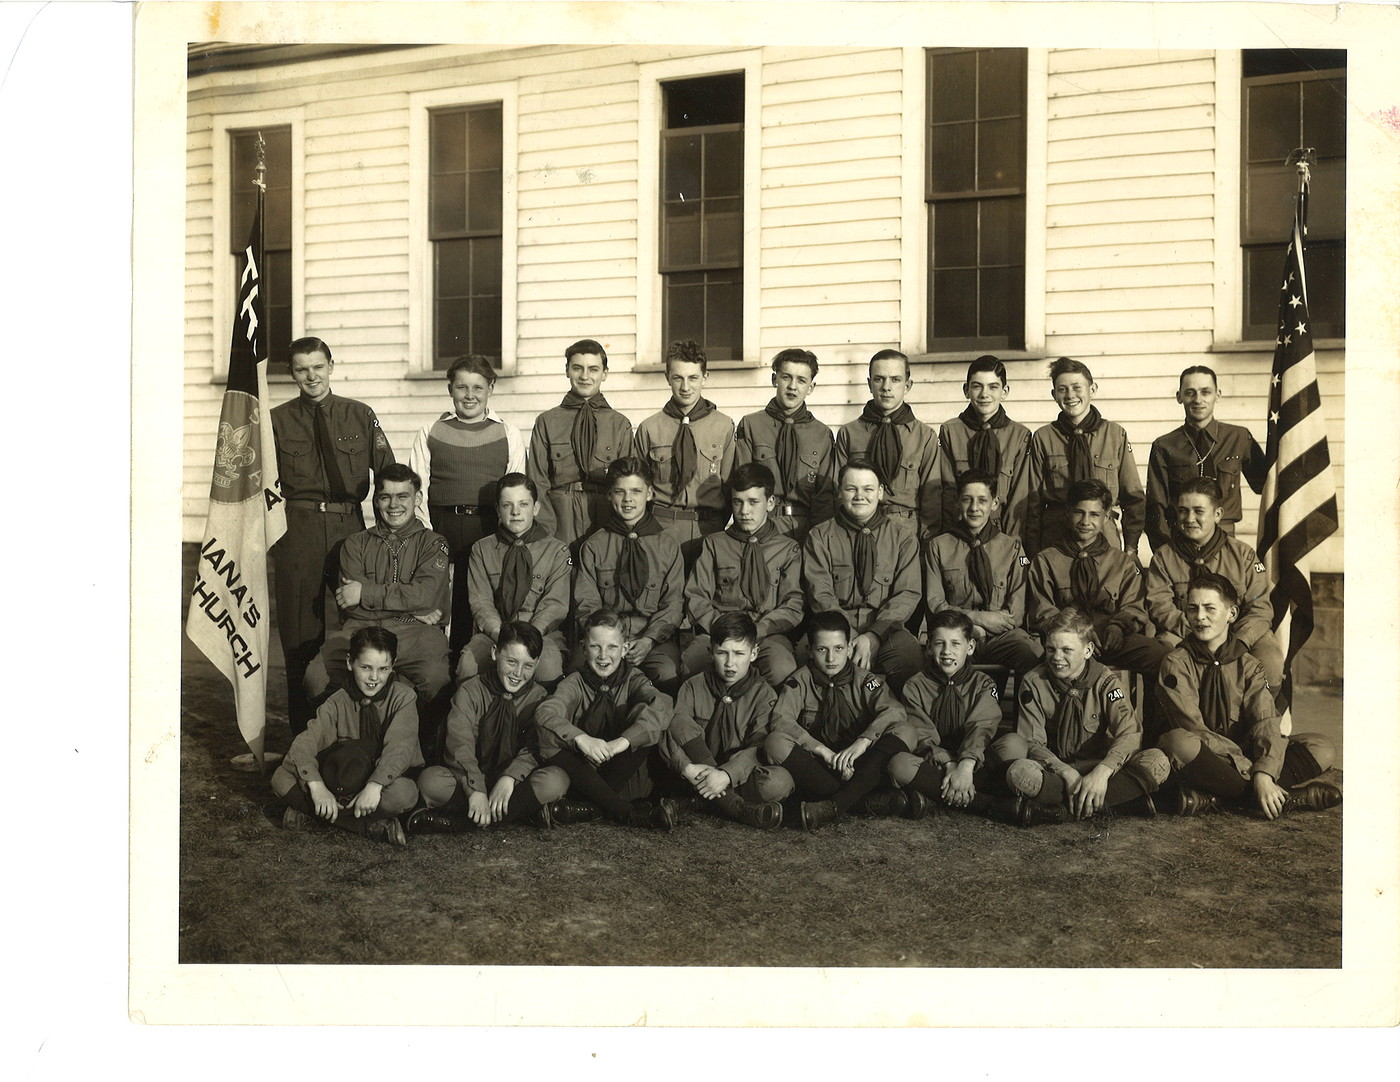 Dad with his Boy Scout Troop Number 240, St. Juliana's Parish, Detroit, Michigan. 1942?